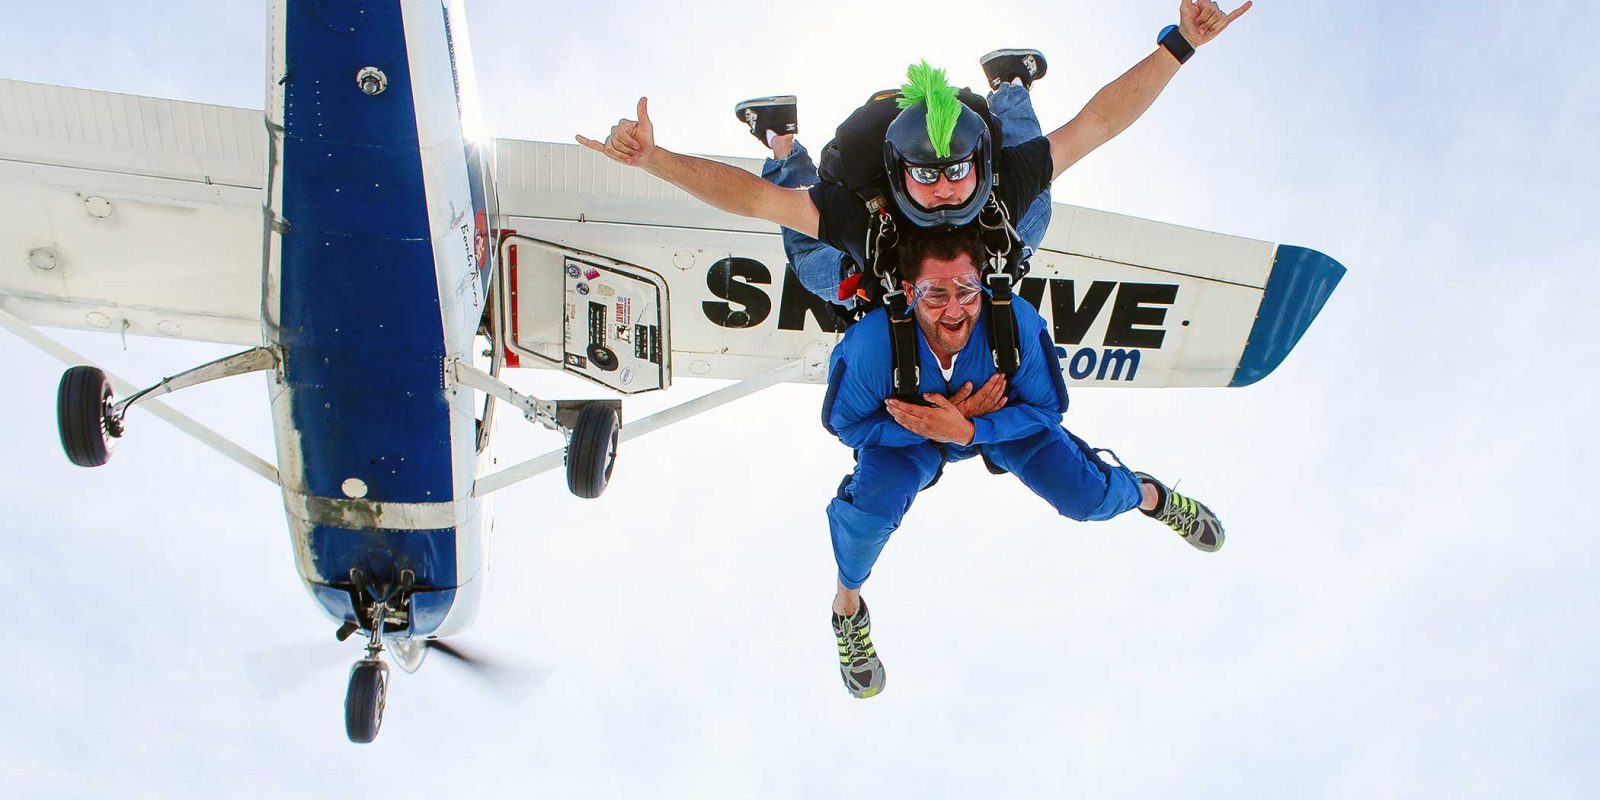 Tandem instructor with green mohawk helmet and student free falling with plane behind them.